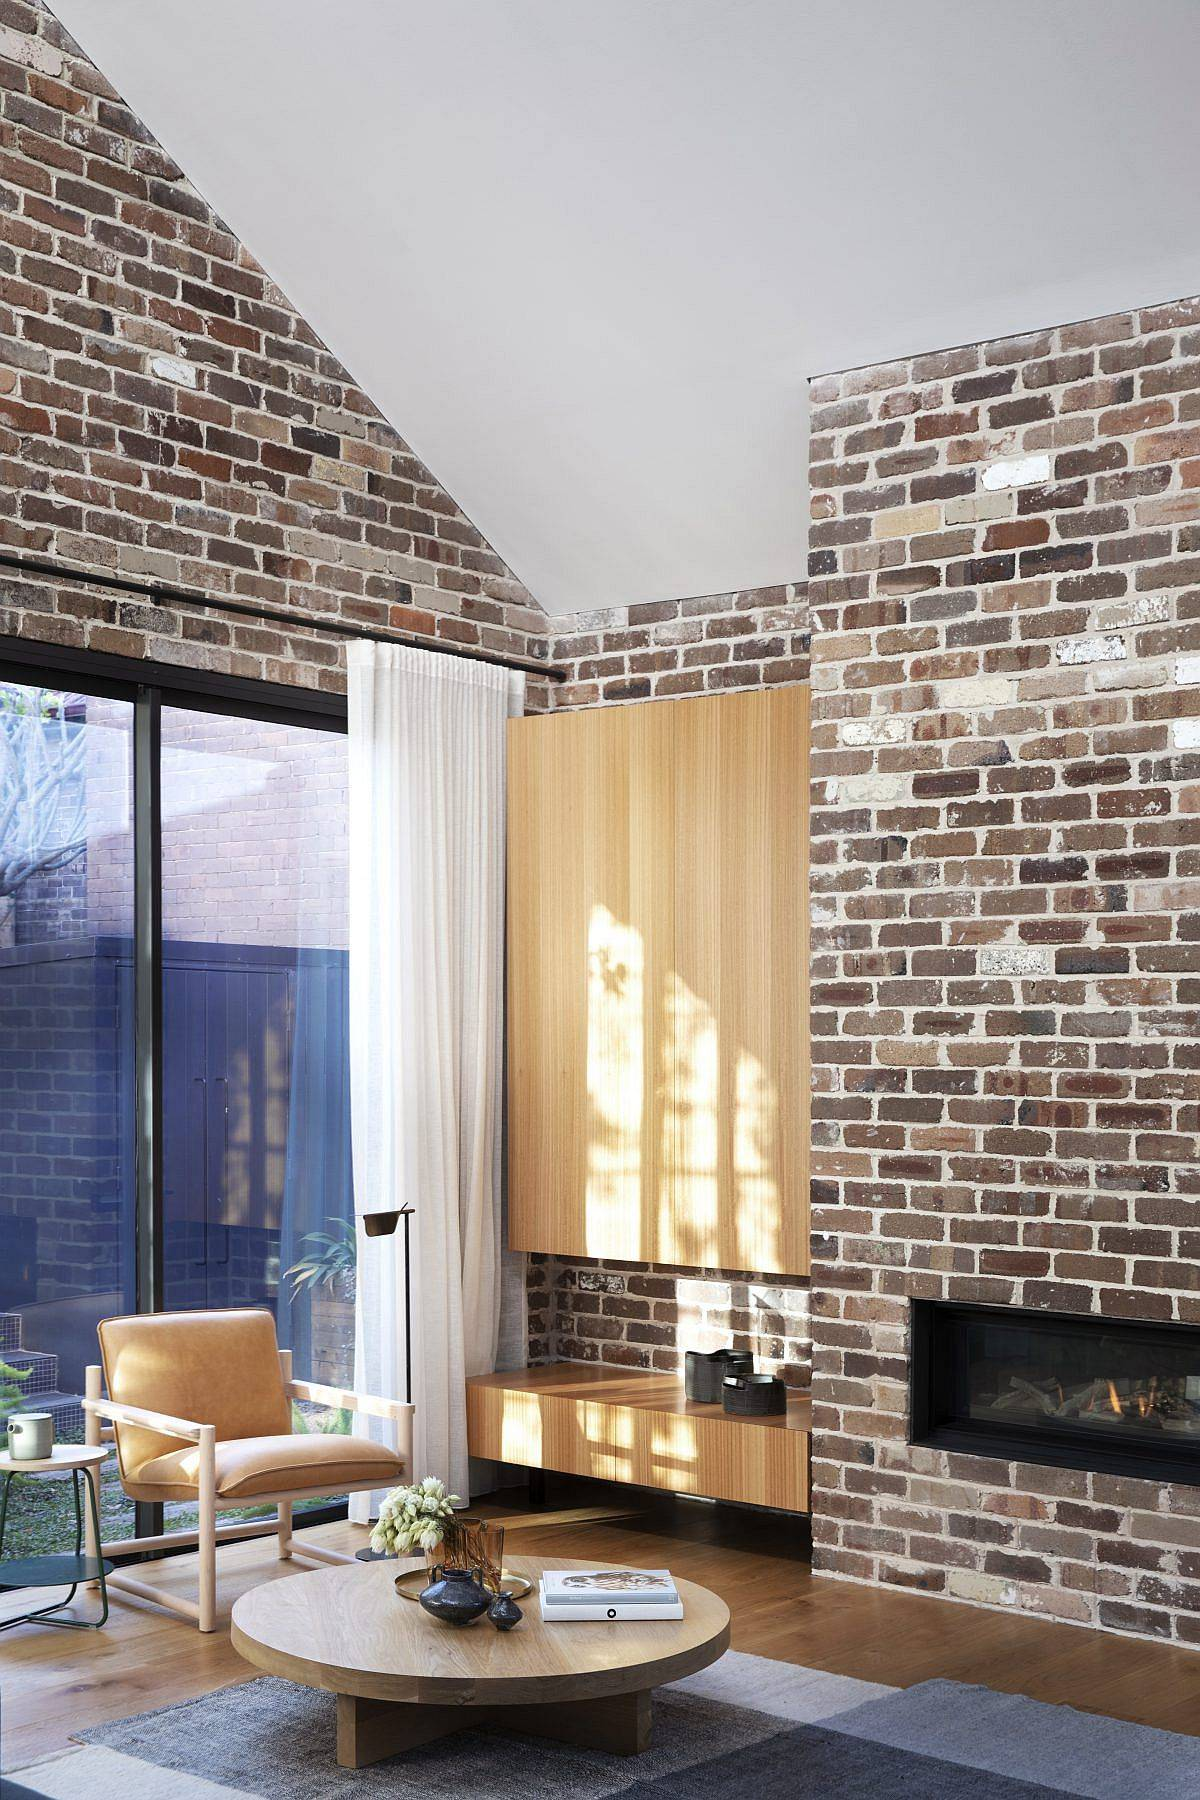 Lovely-brick-walls-coupled-with-modern-finishes-and-wooden-sections-inside-the-Cnr-Virginia-home-33664